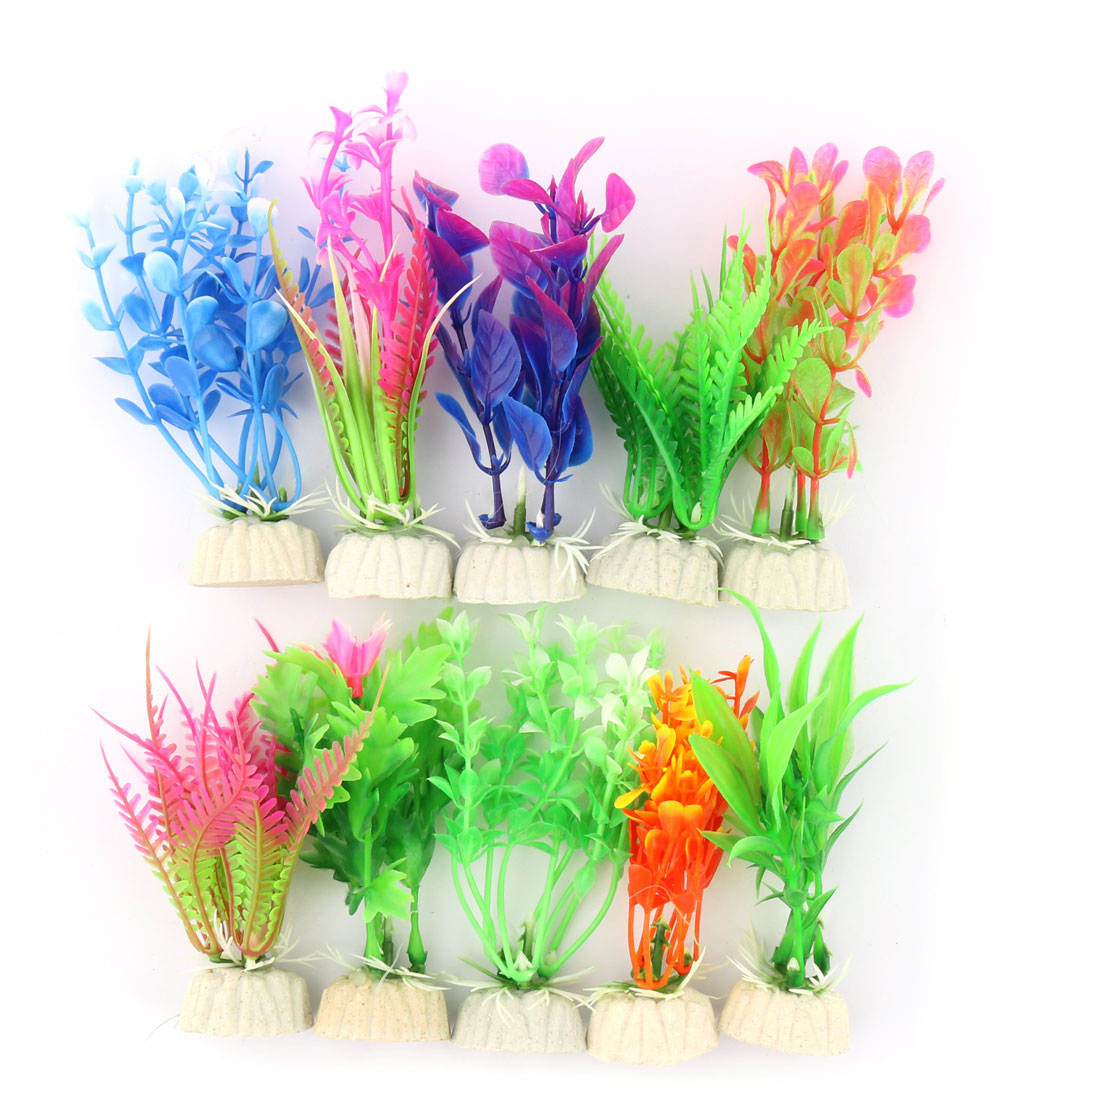 Aquarium Fish Tank Plastic Emulational Plant Grass Ornament Assorted Color 10 Pcs